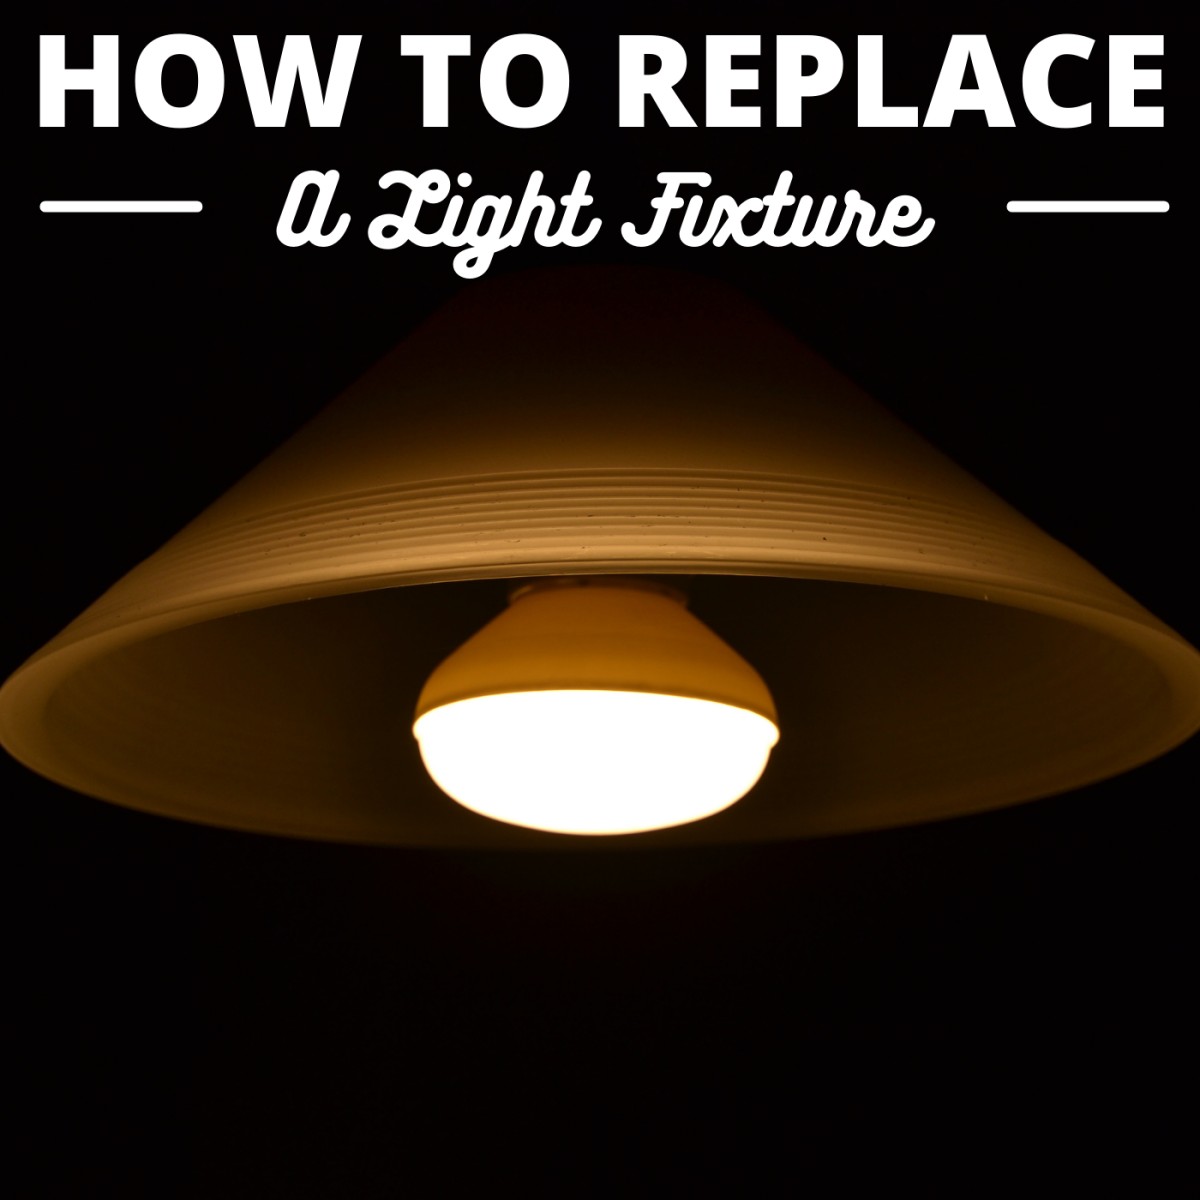 Learn how to install and wire a new light fixture at home using basic tools.